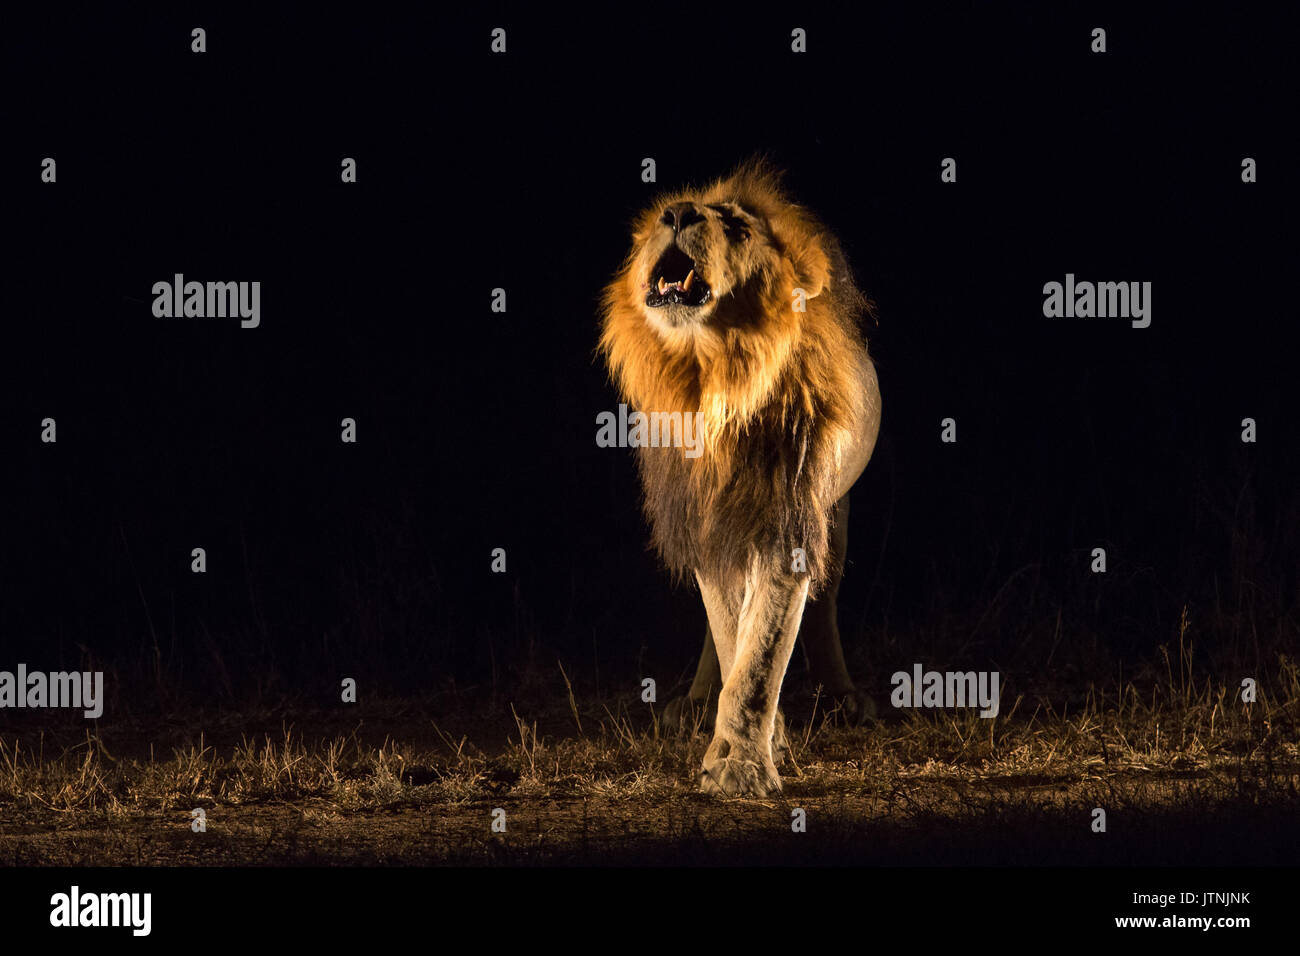 Frontal view of a male lion (Panthera leo) roaring at night - Stock Image